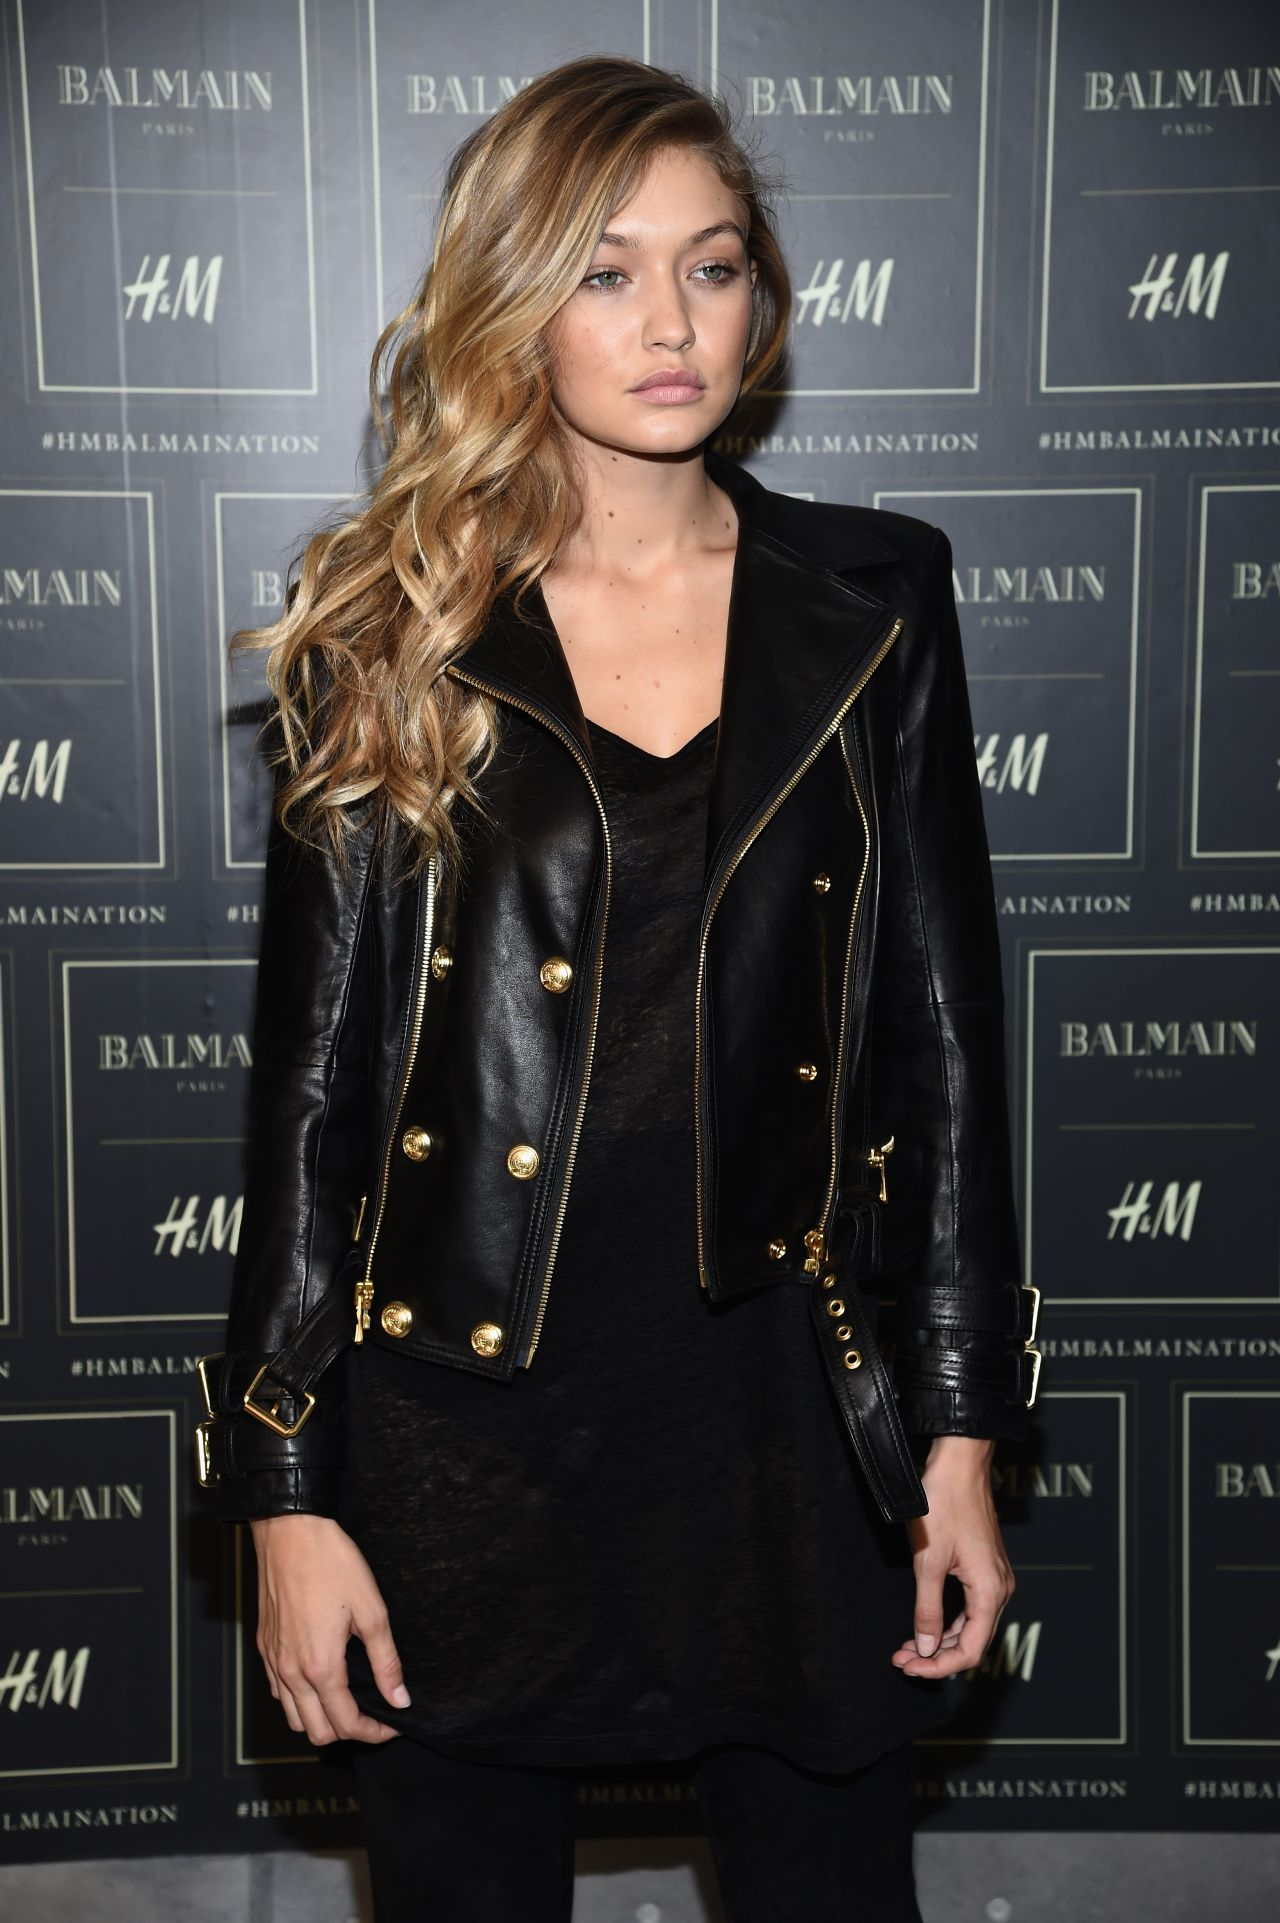 gigi-hadid-balmain-x-h-m-collection-launch-in-new-york-city_6